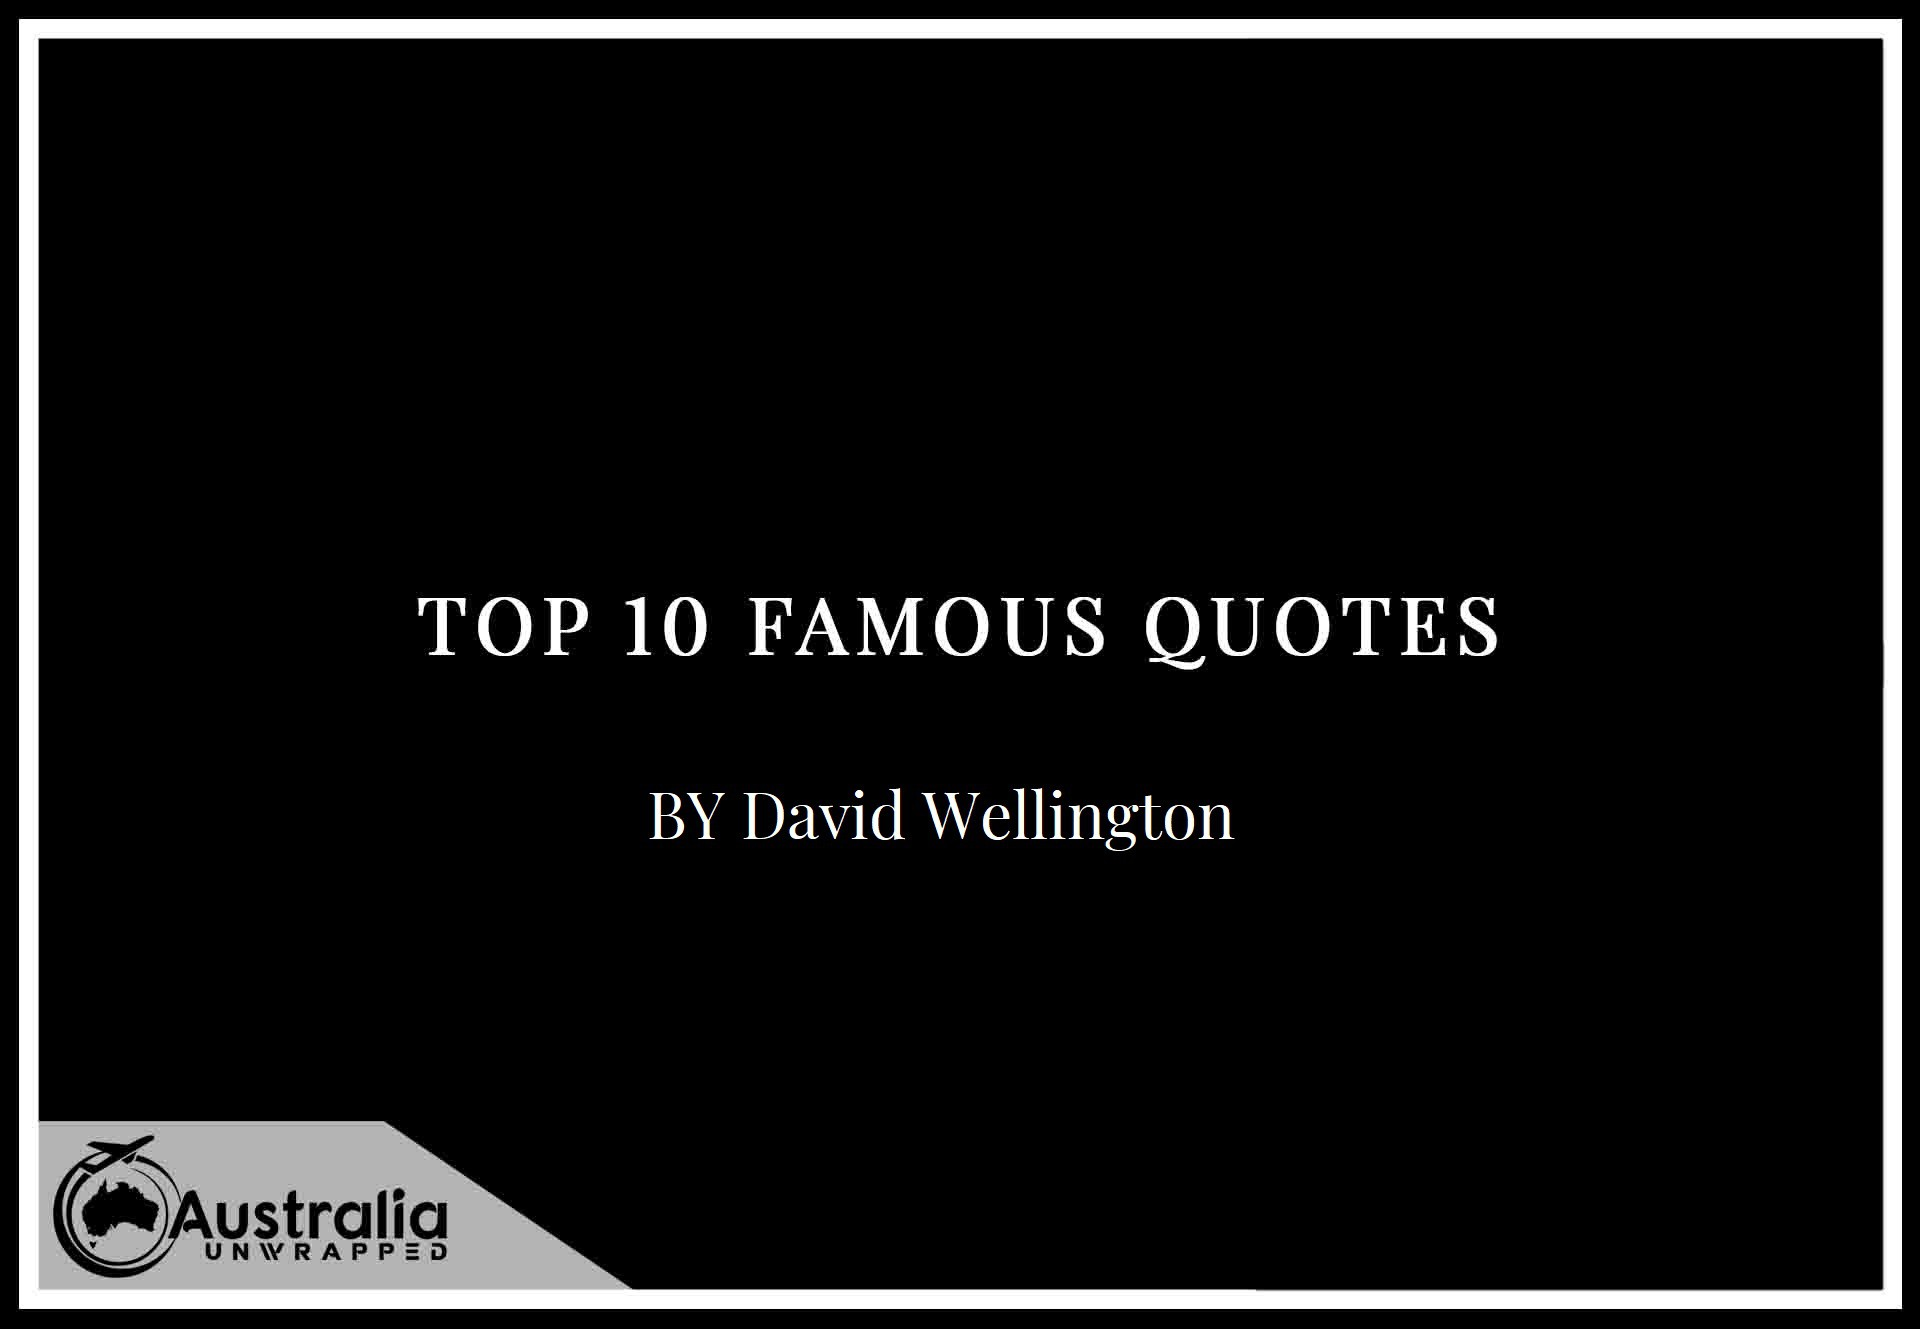 Top 10 Famous Quotes by Author David Wellington